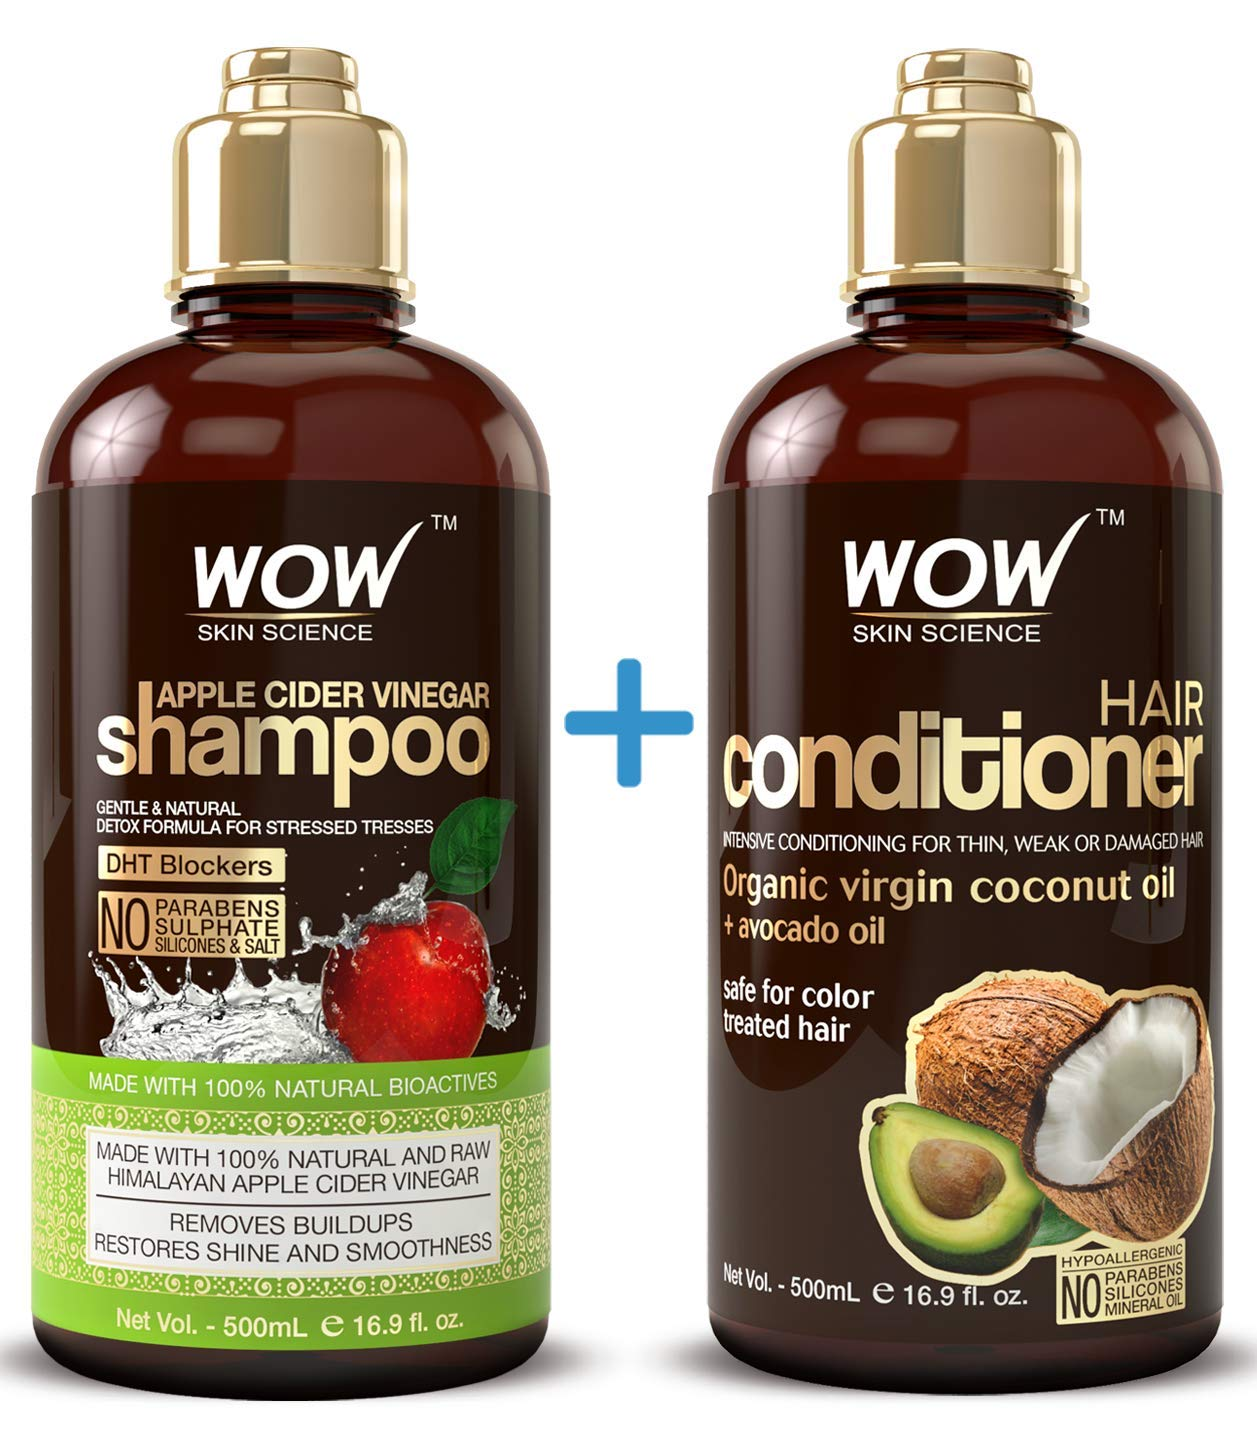 wow shampoo and conditioner